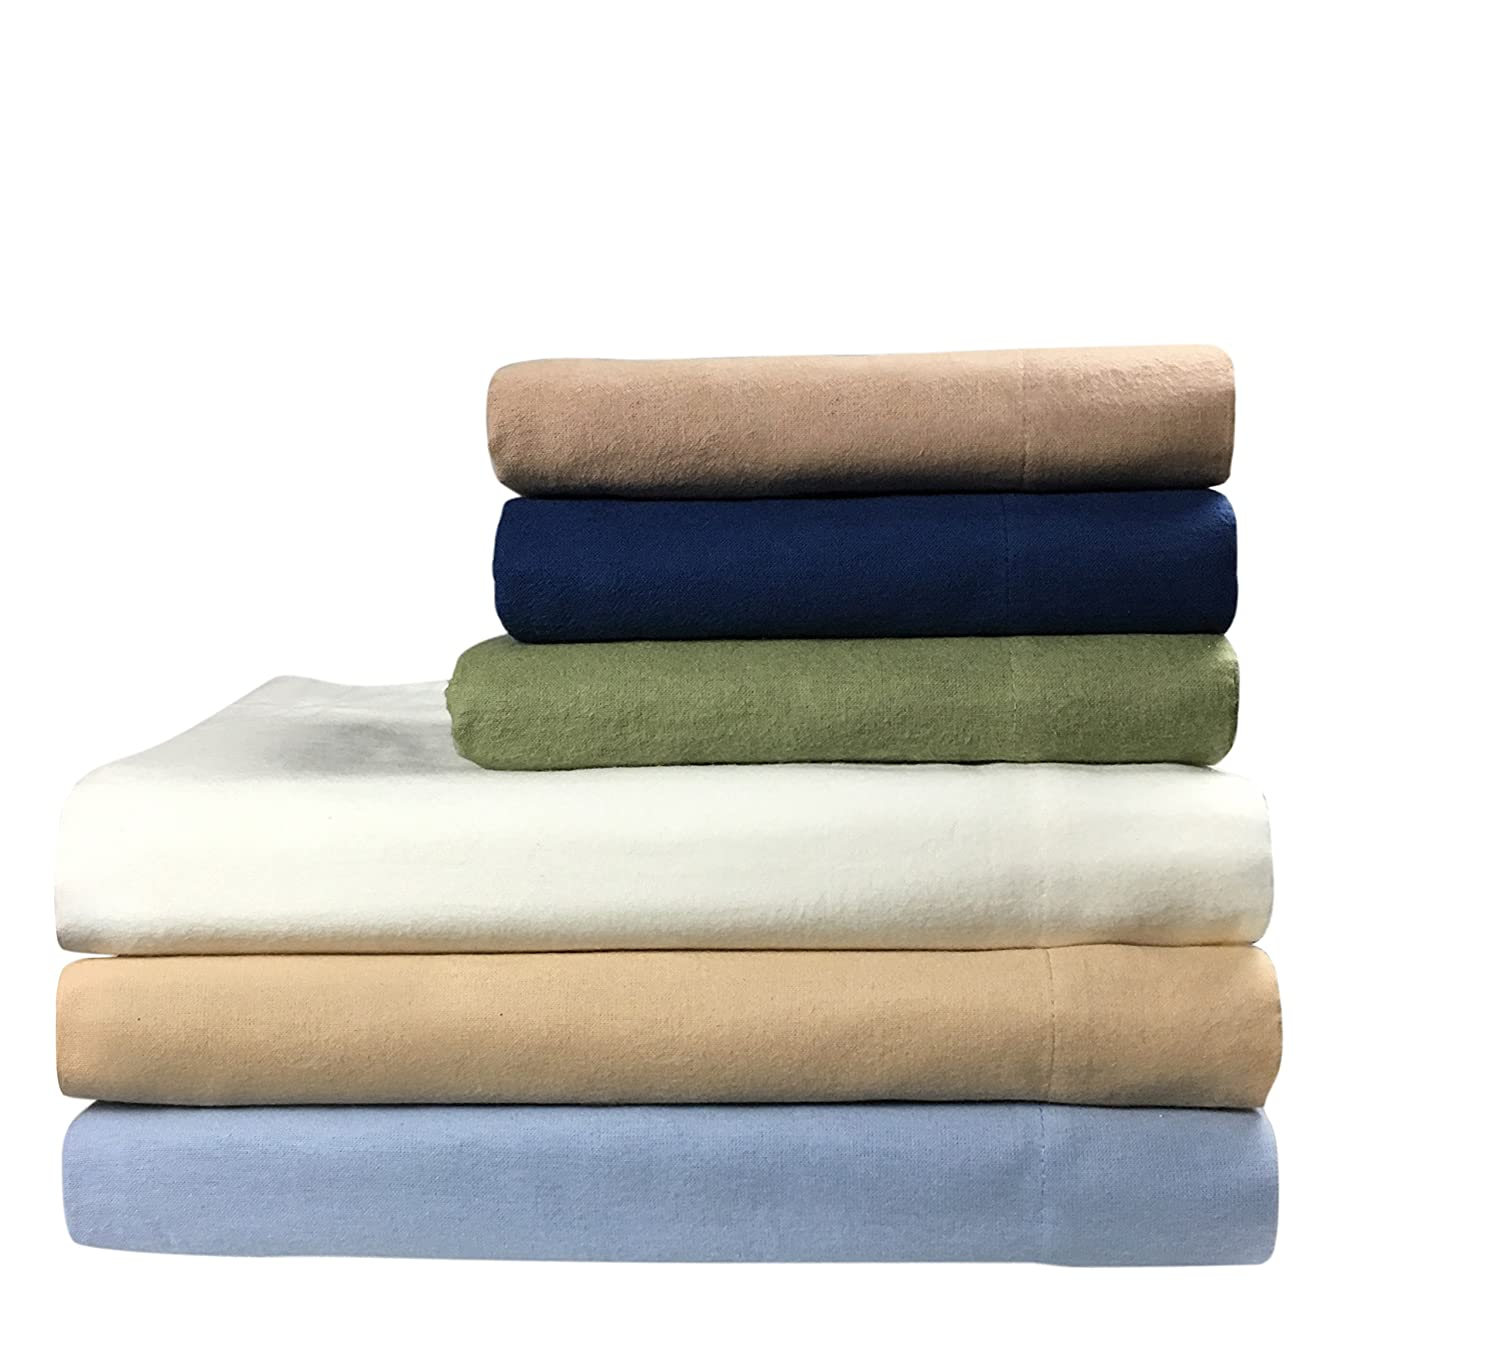 SERAGLIO Flannel Fitted Sheet Queen 100% Cotton